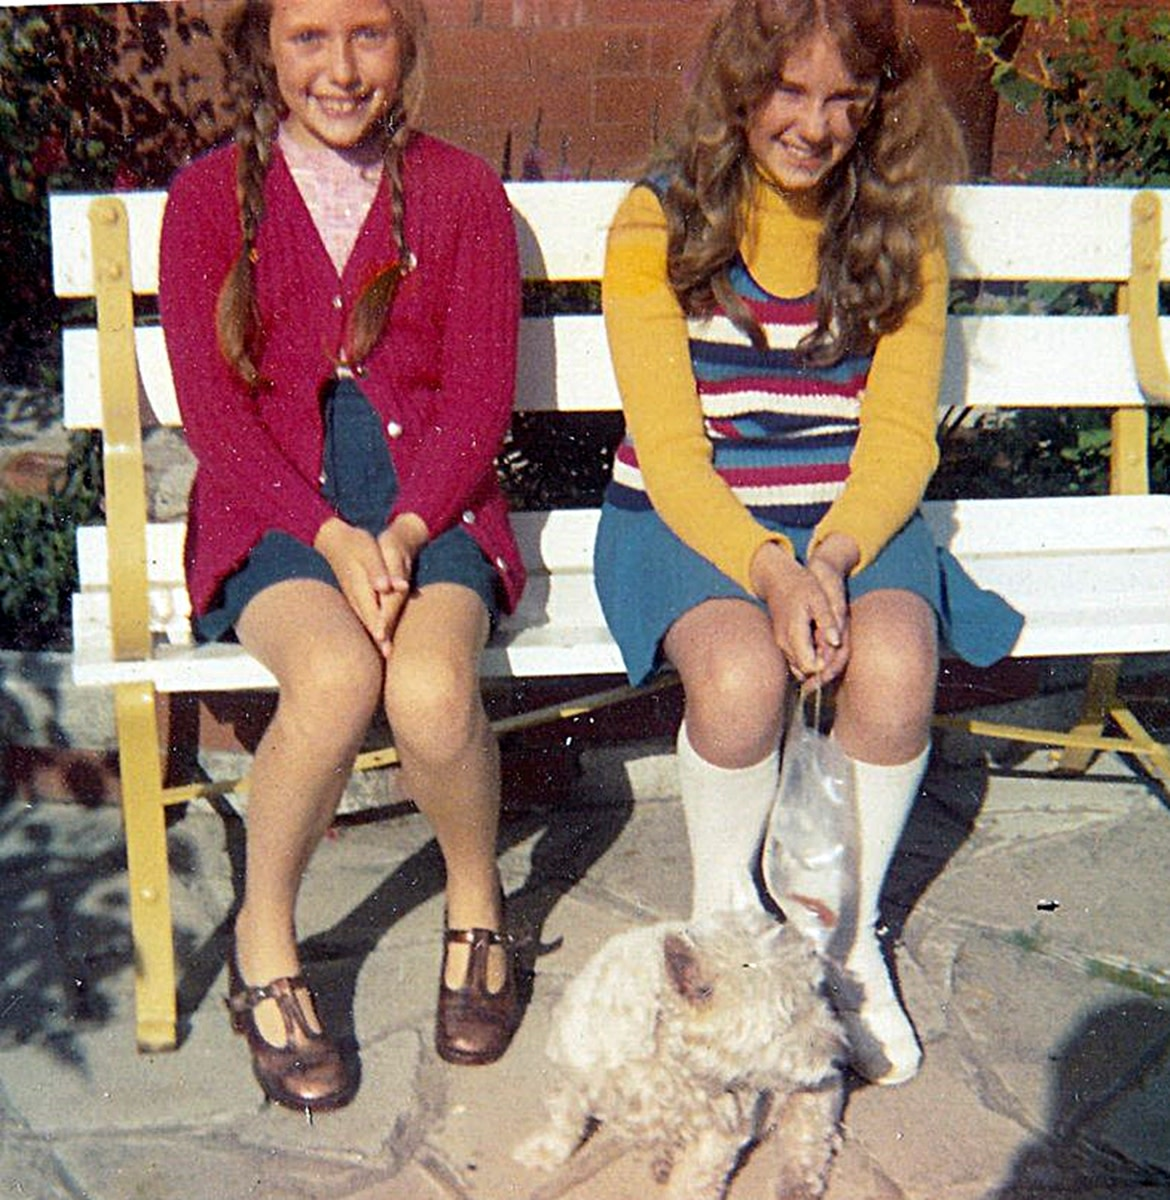 I am pictured (on the left) in my front garden in the 1970s, with my ever-faithful dog and my cousin Sharon, who had won a goldfish at the funfair. In those days, you could always win goldfish at the fair, but I'm glad it isn't common practice today.